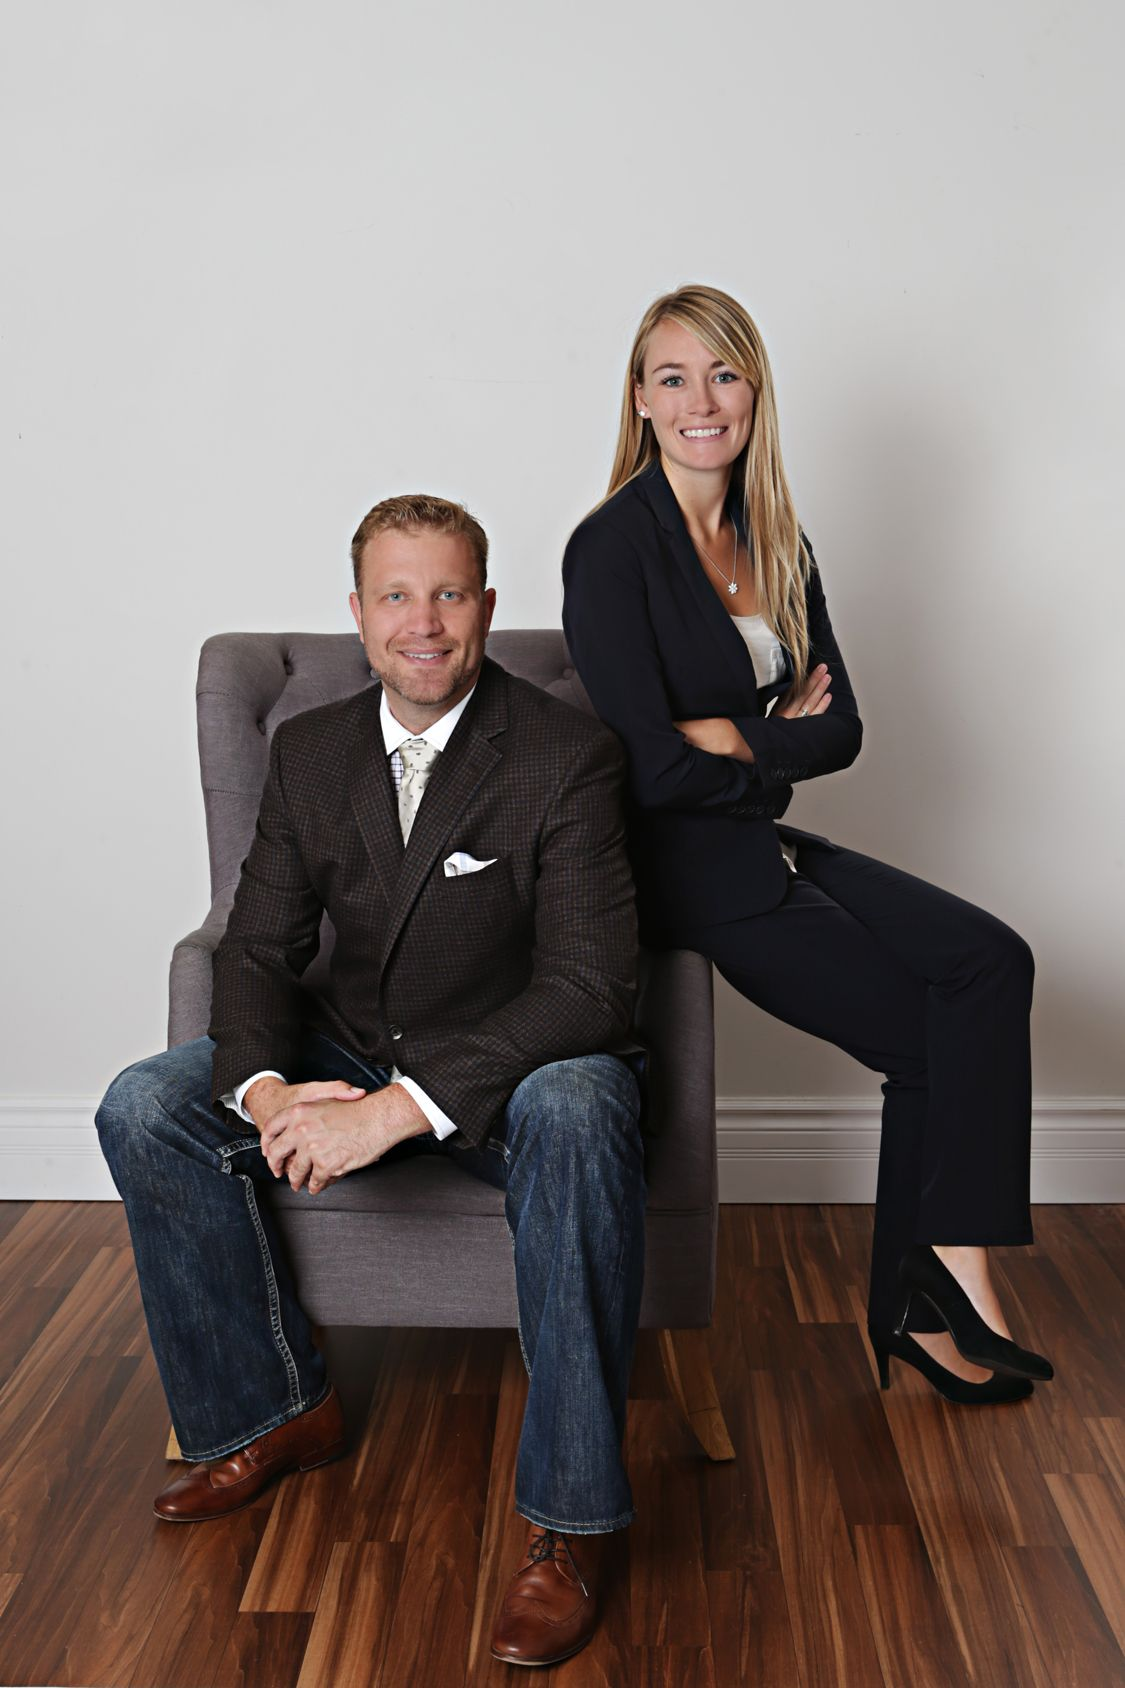 Mike Heddle & Shawna Connelly of The Heddle Group